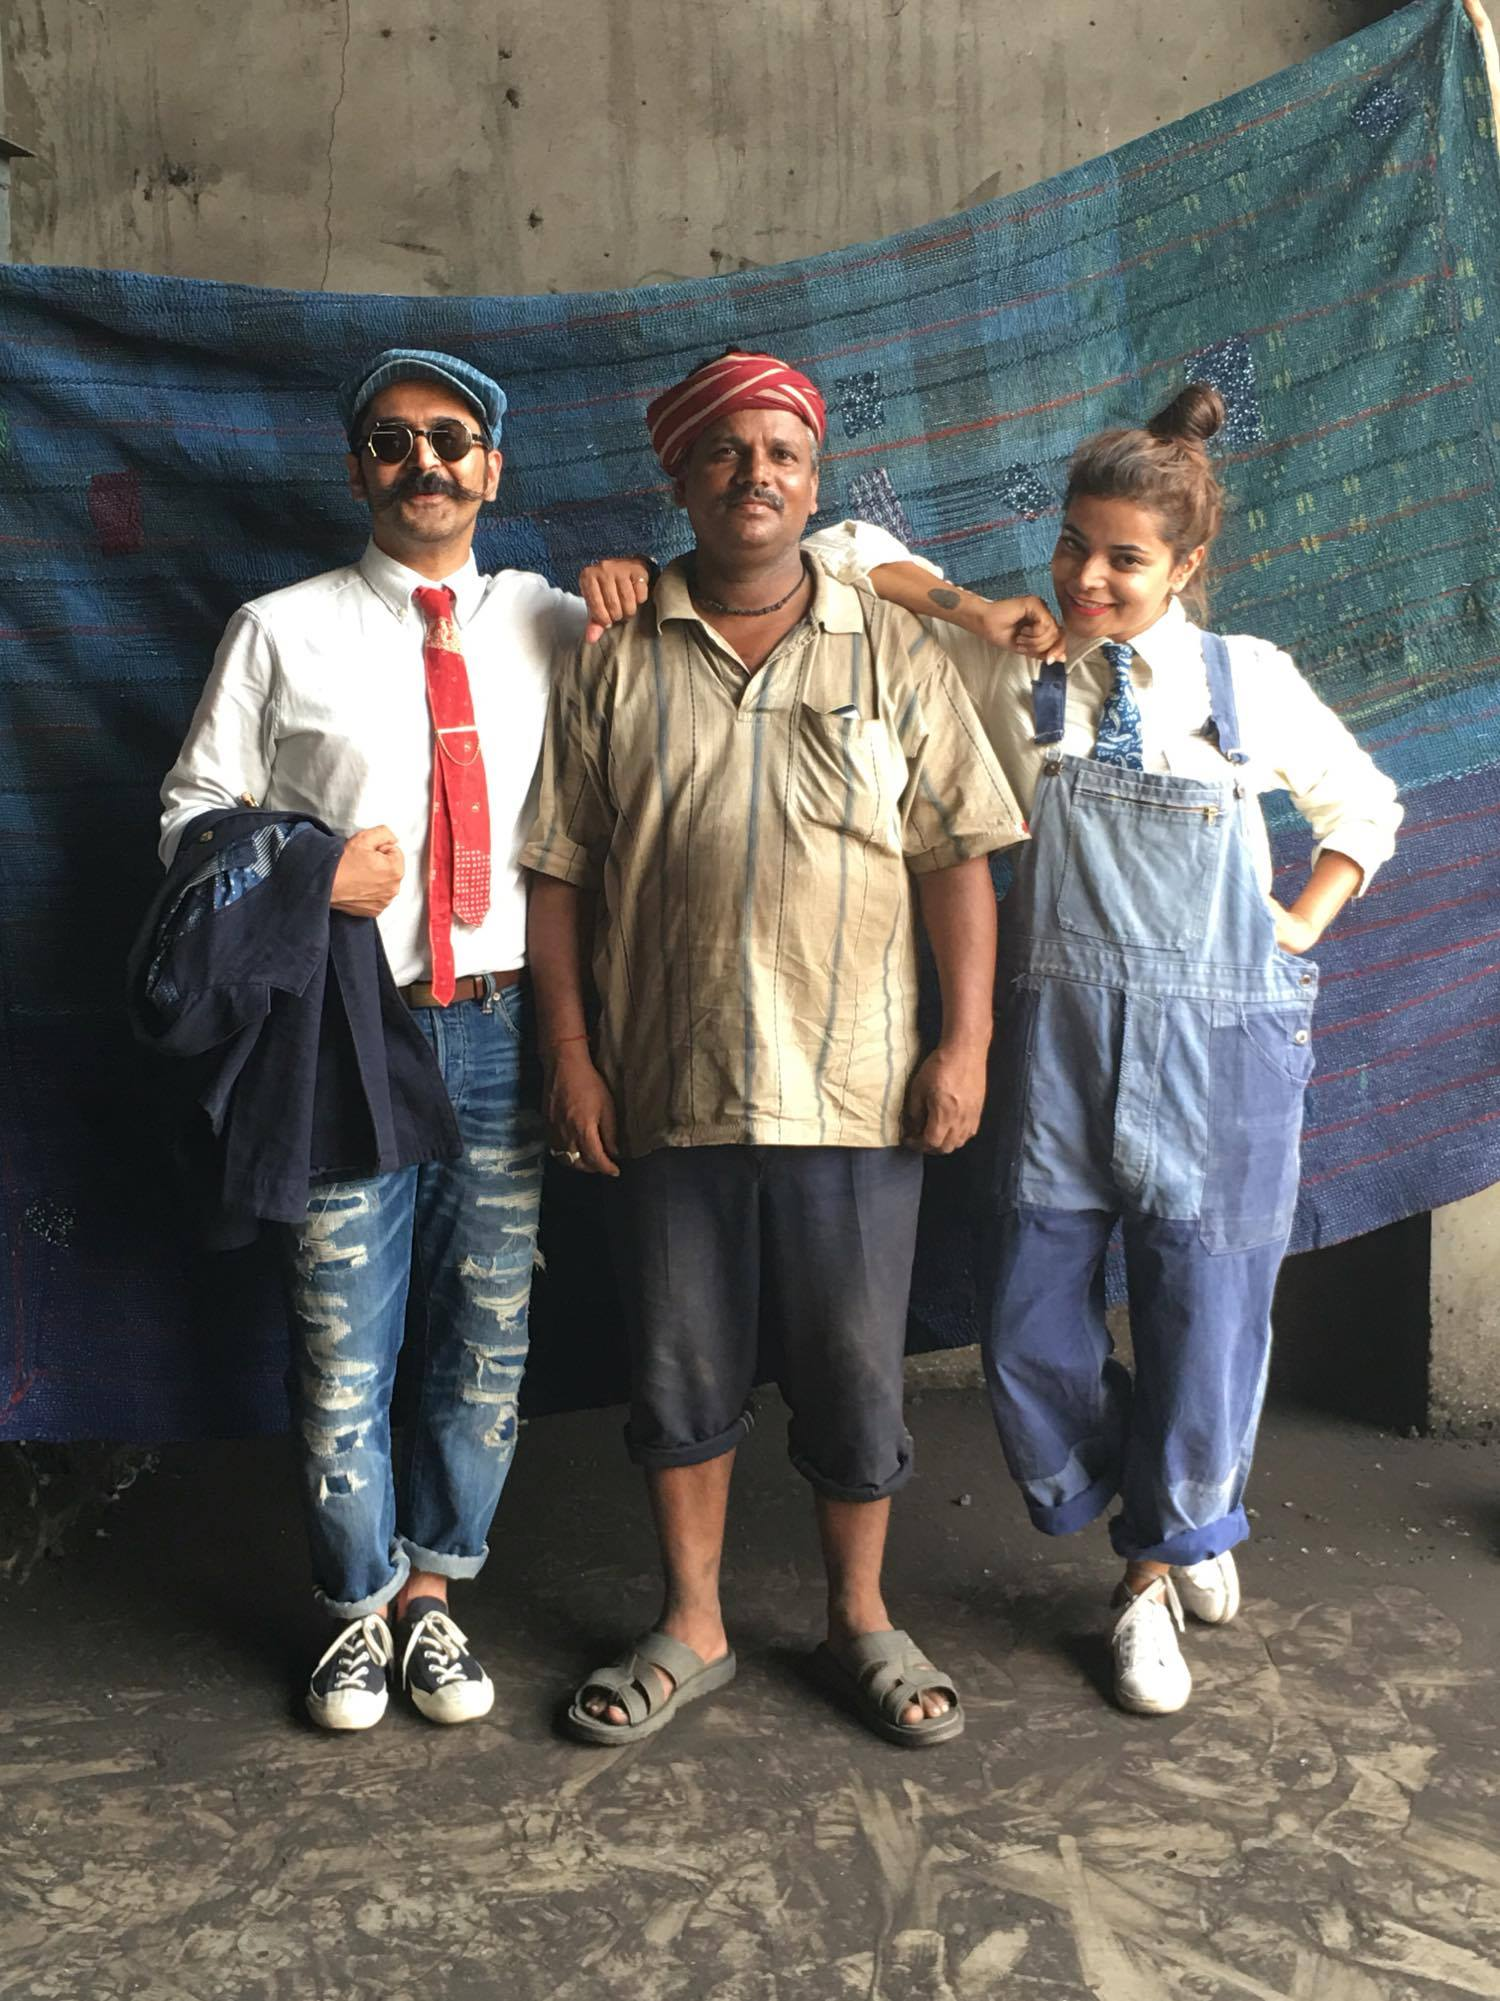 Vicksit at work with his besties, vintage with a modern twist, image©vicksitmehta